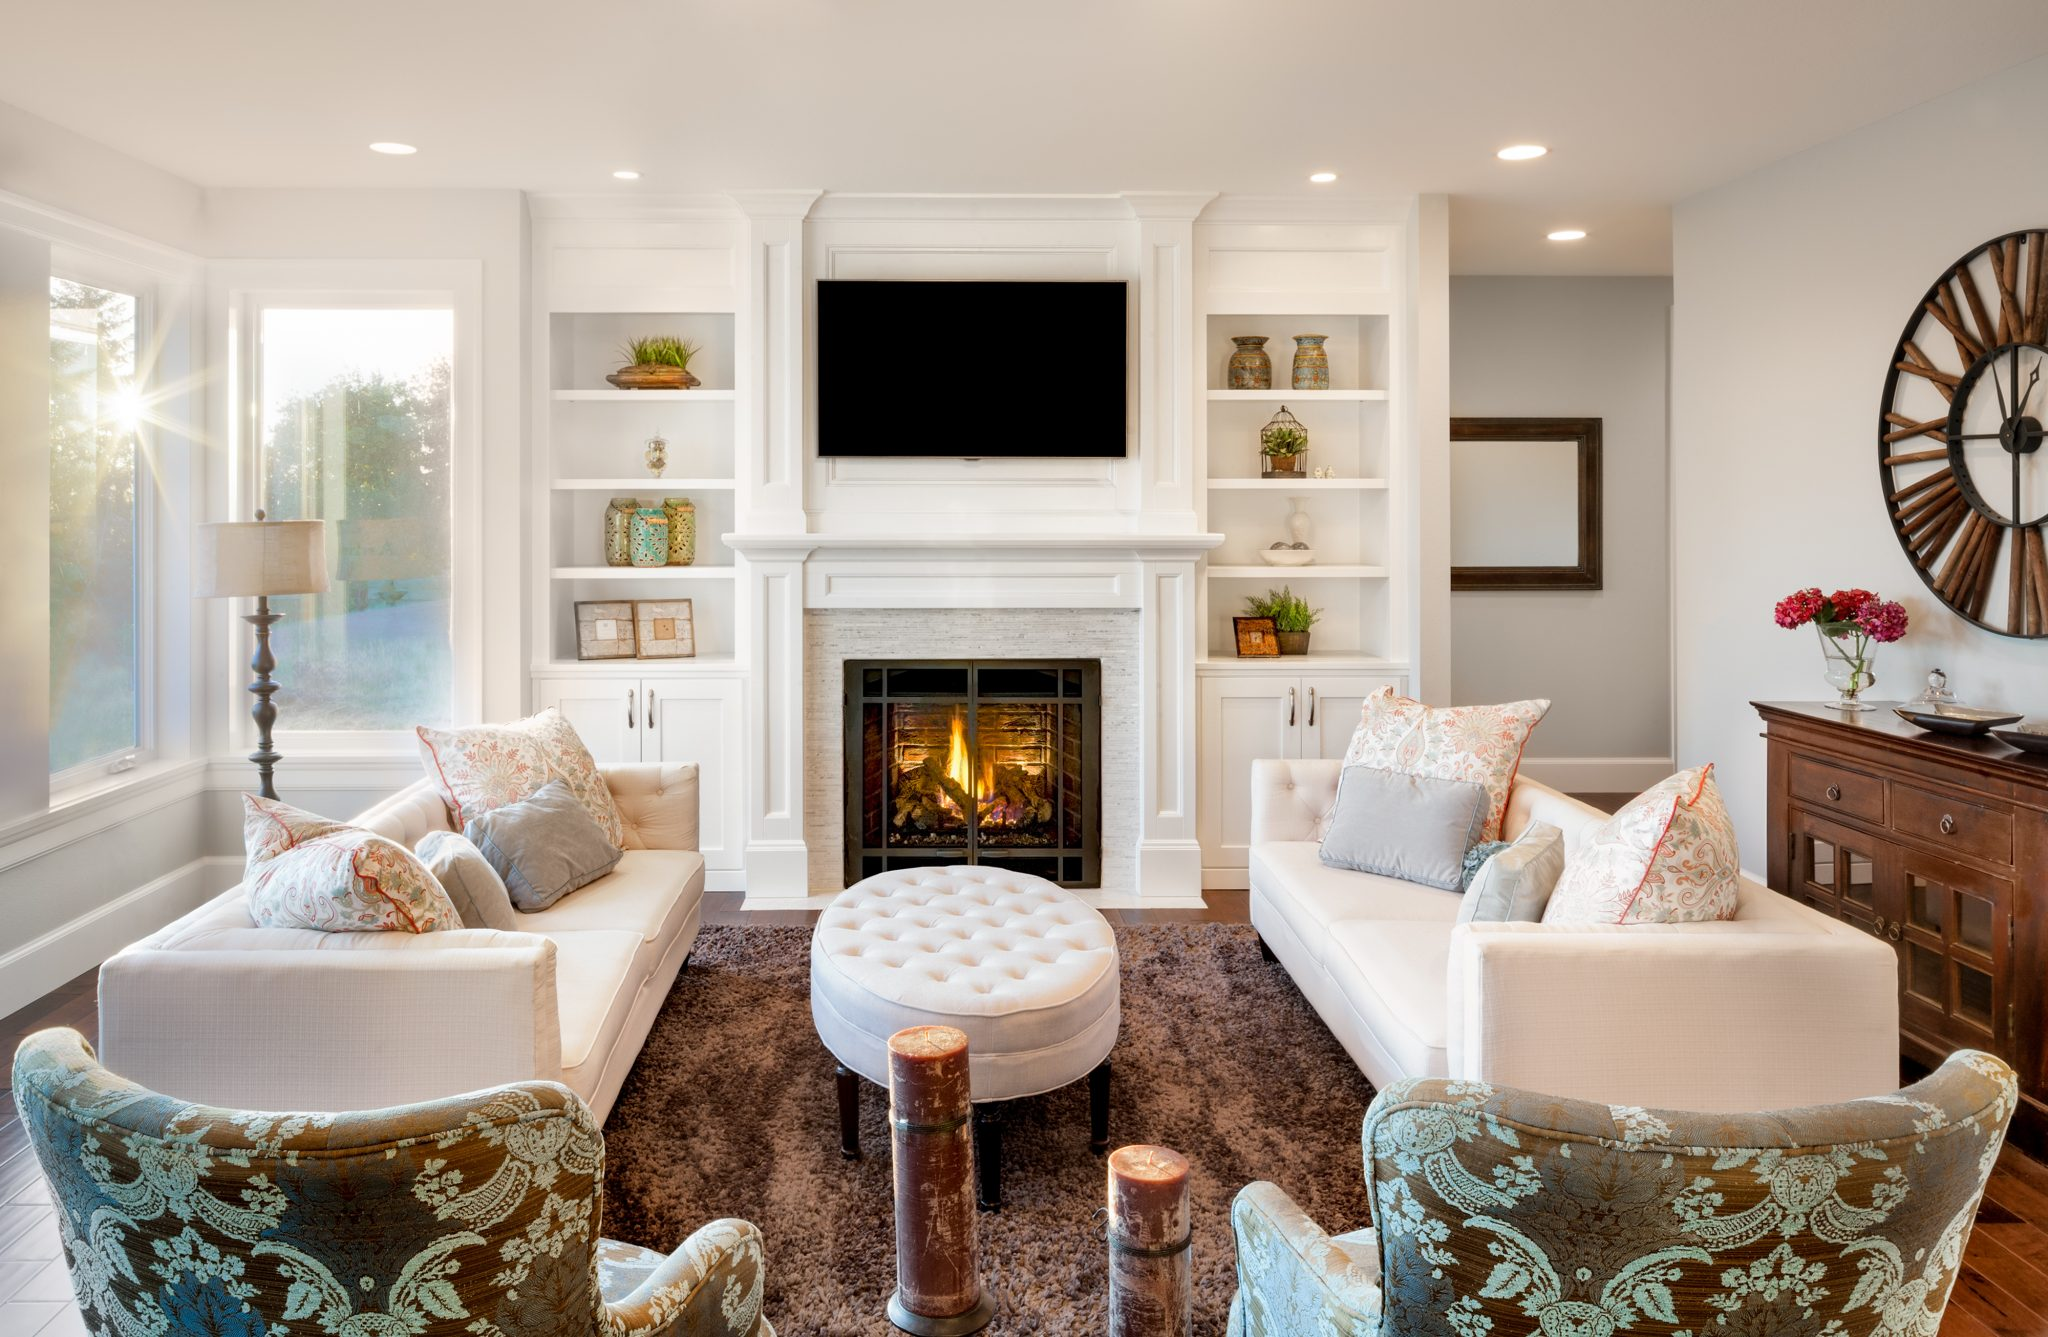 Kelowna Cleaning Company All About Details Contemporary Living Room